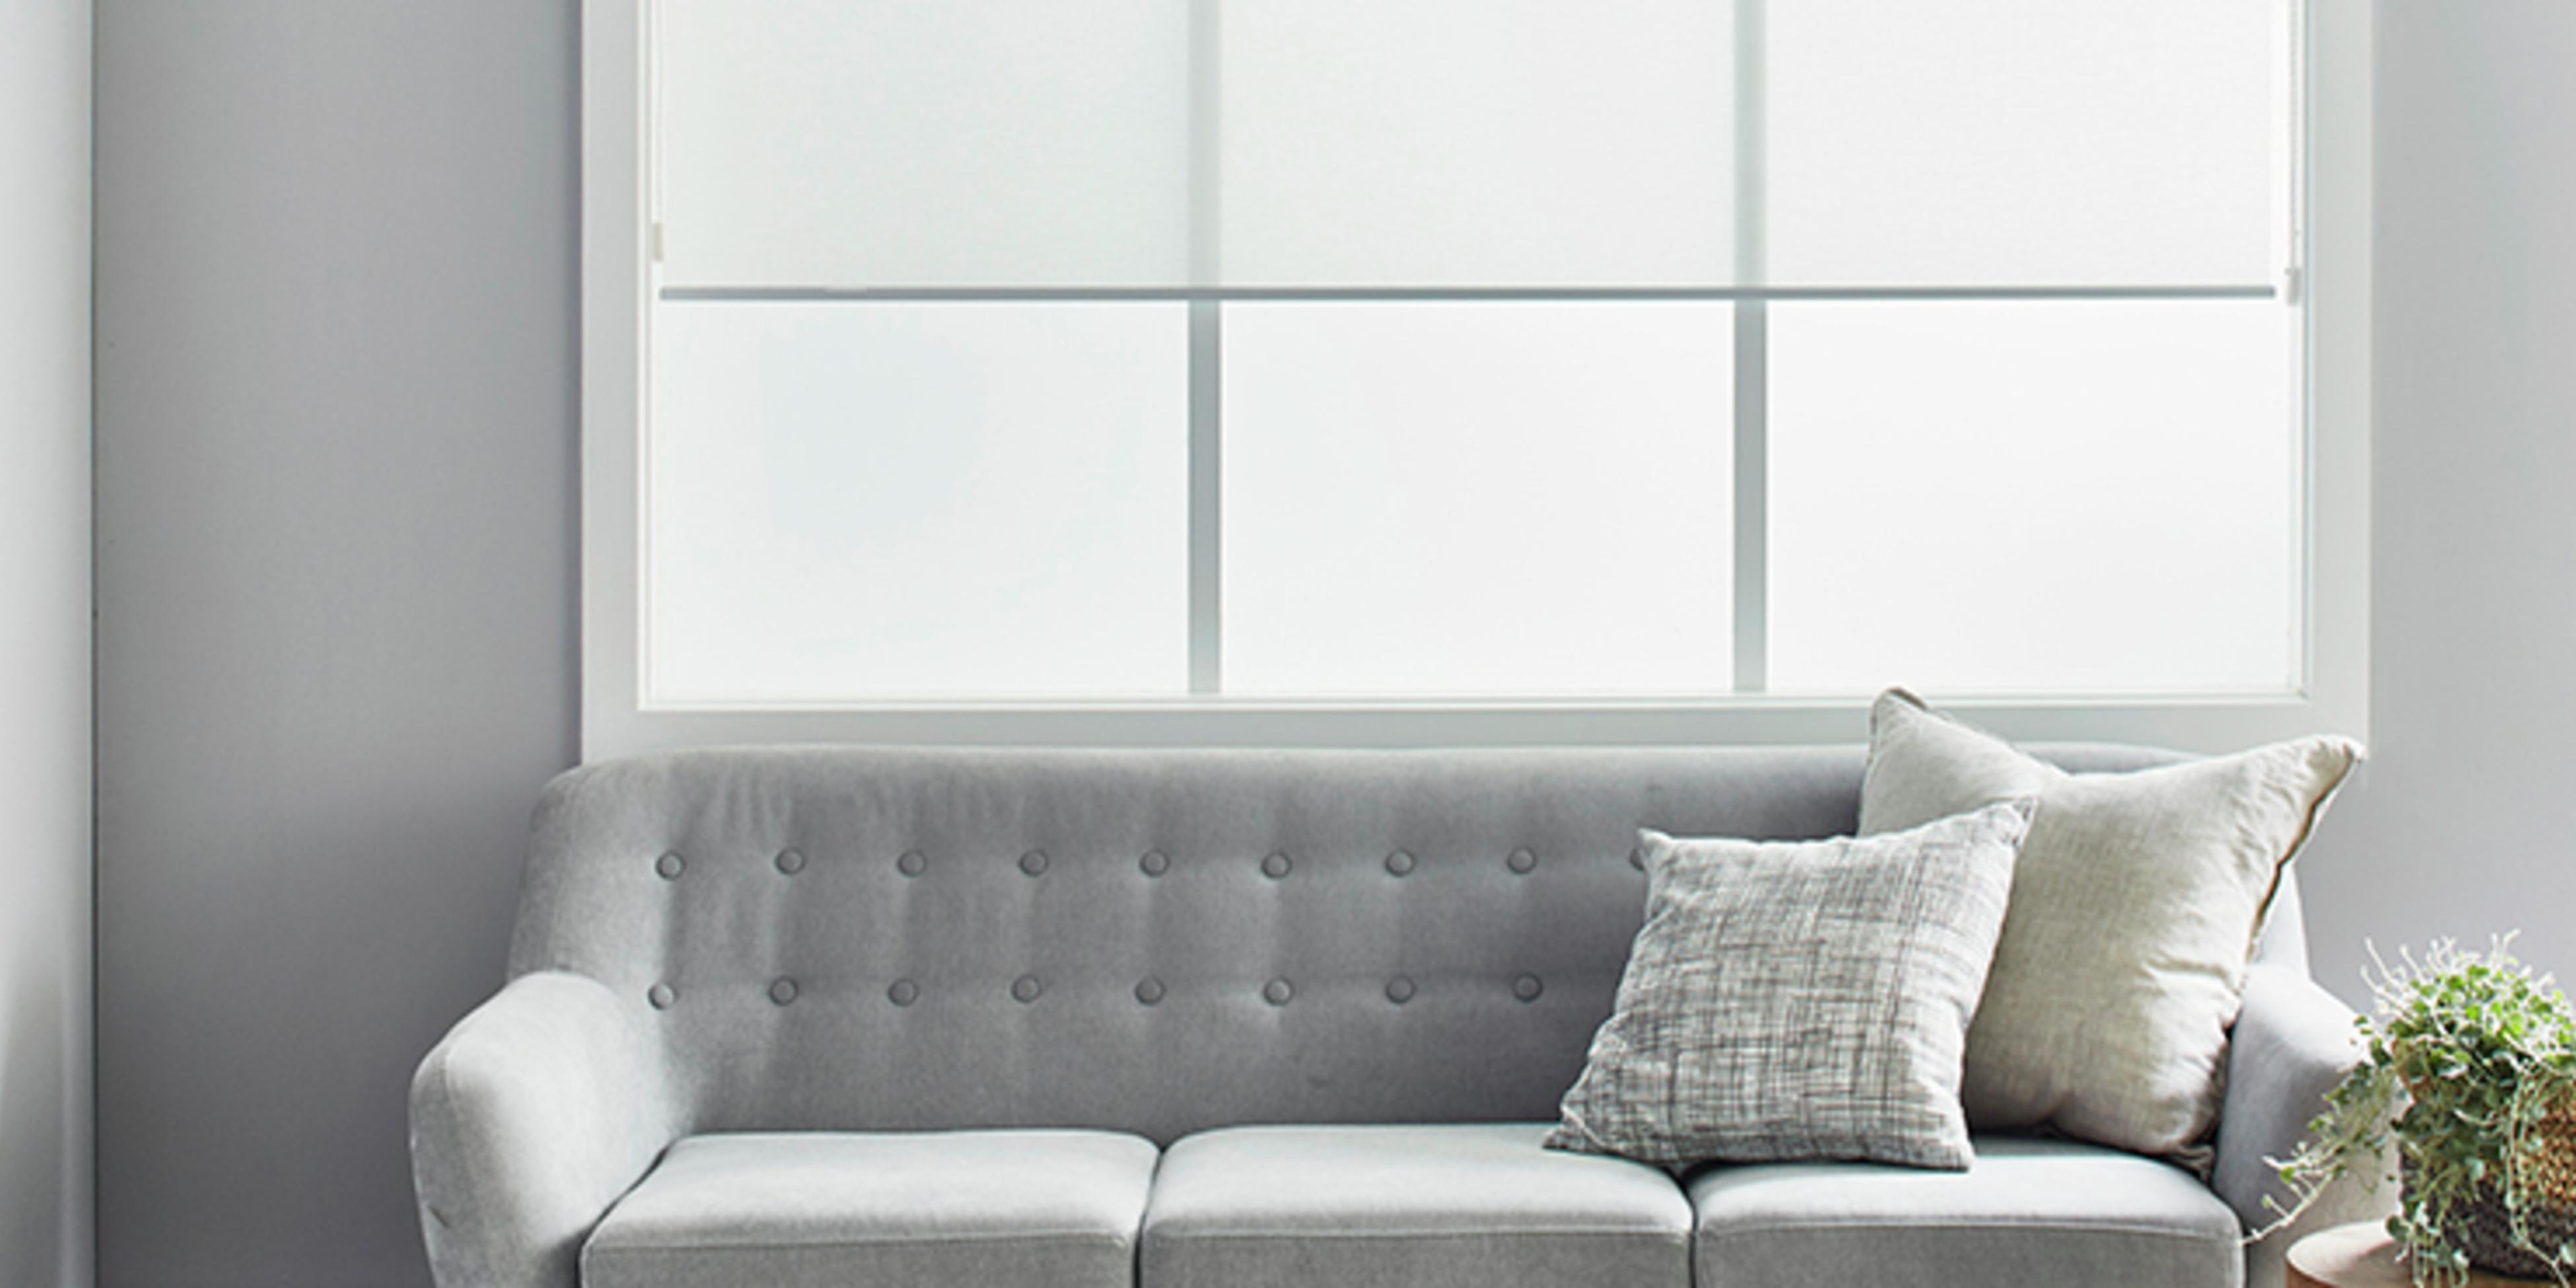 Living room with a grey couch with pillows and a pot plant in front of large windows